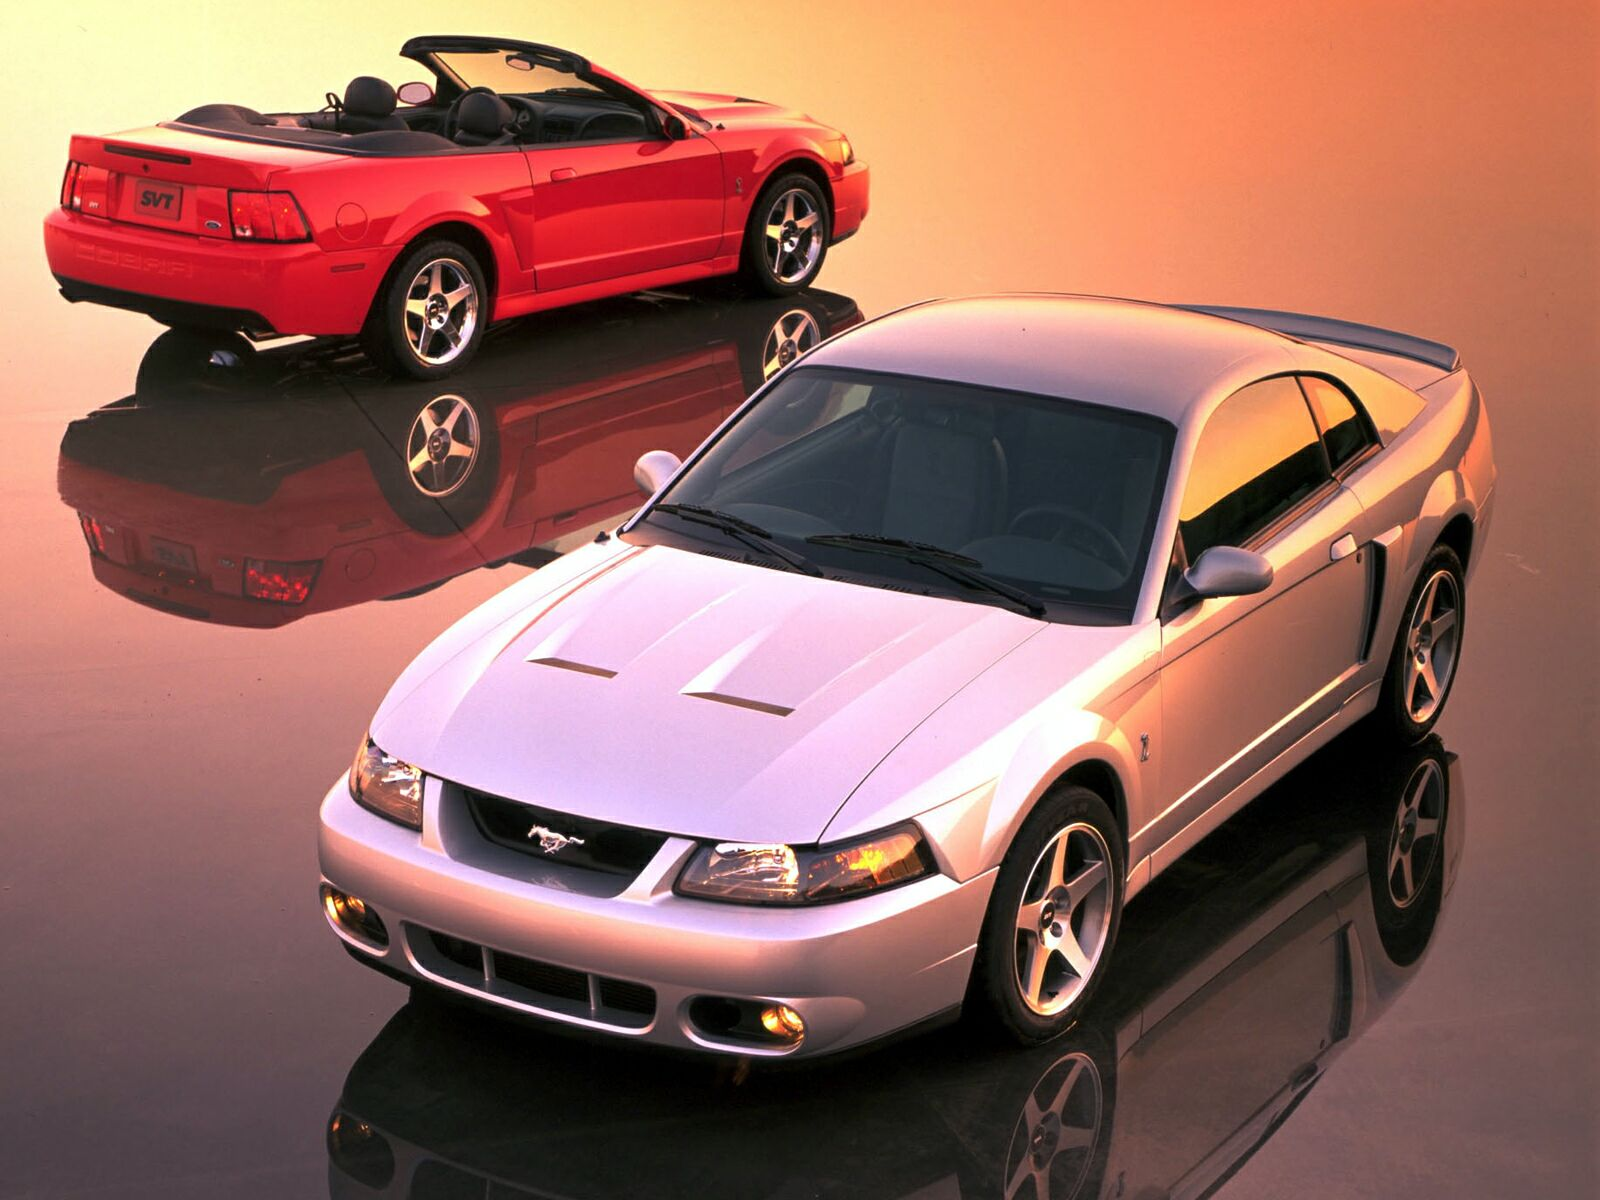 Ford Mustang Cobra photo 10613